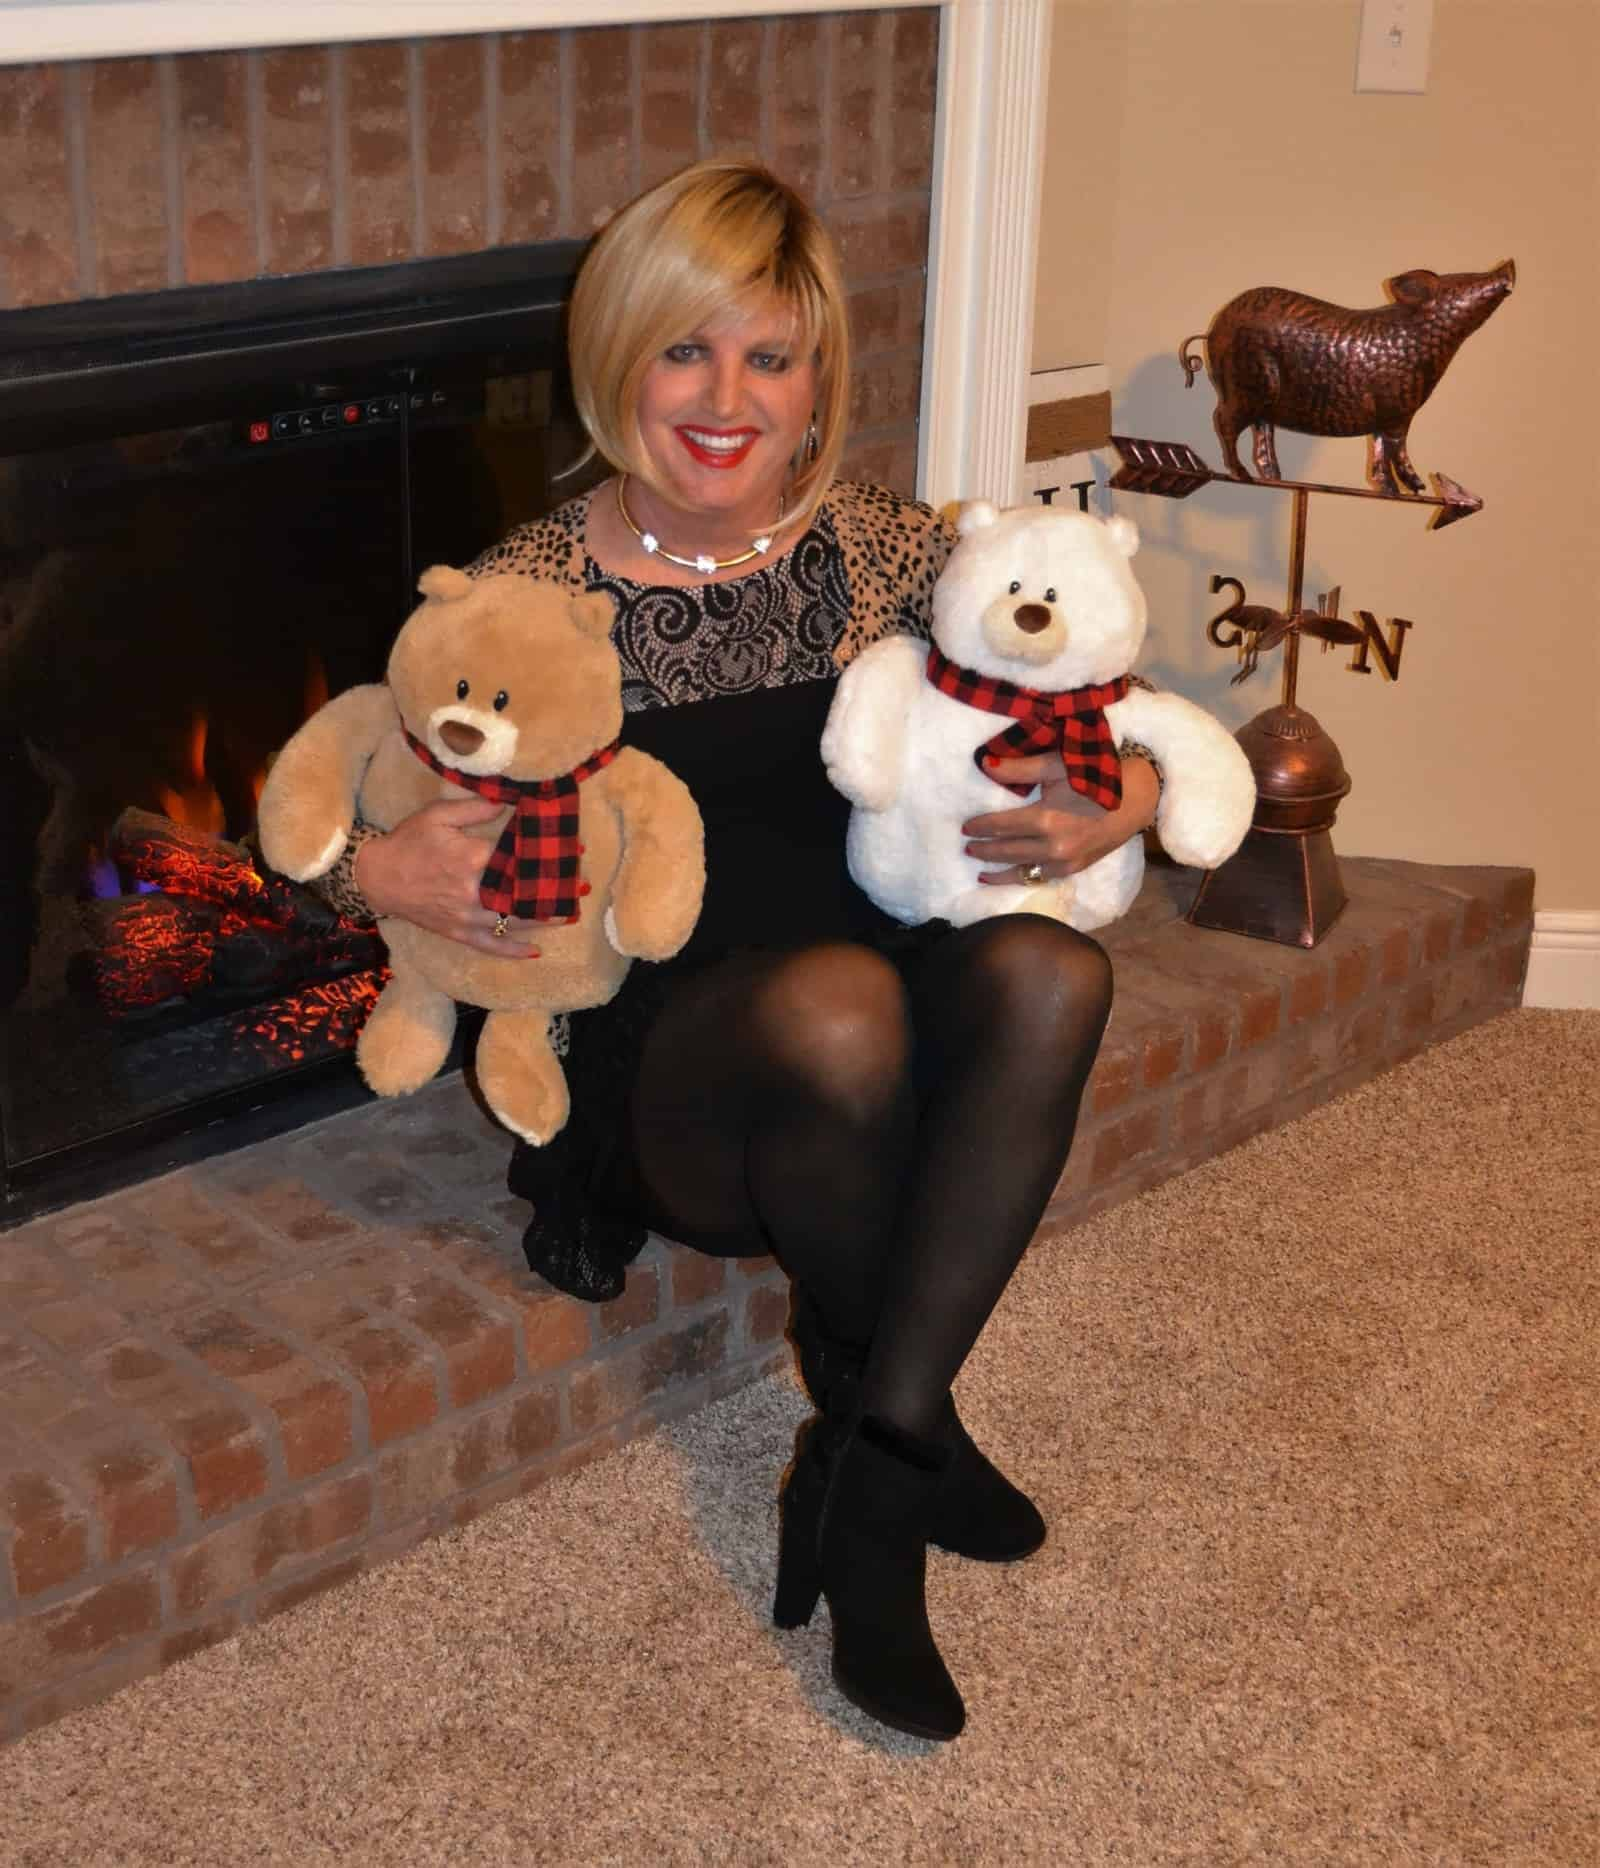 Me And My Two Teddies!